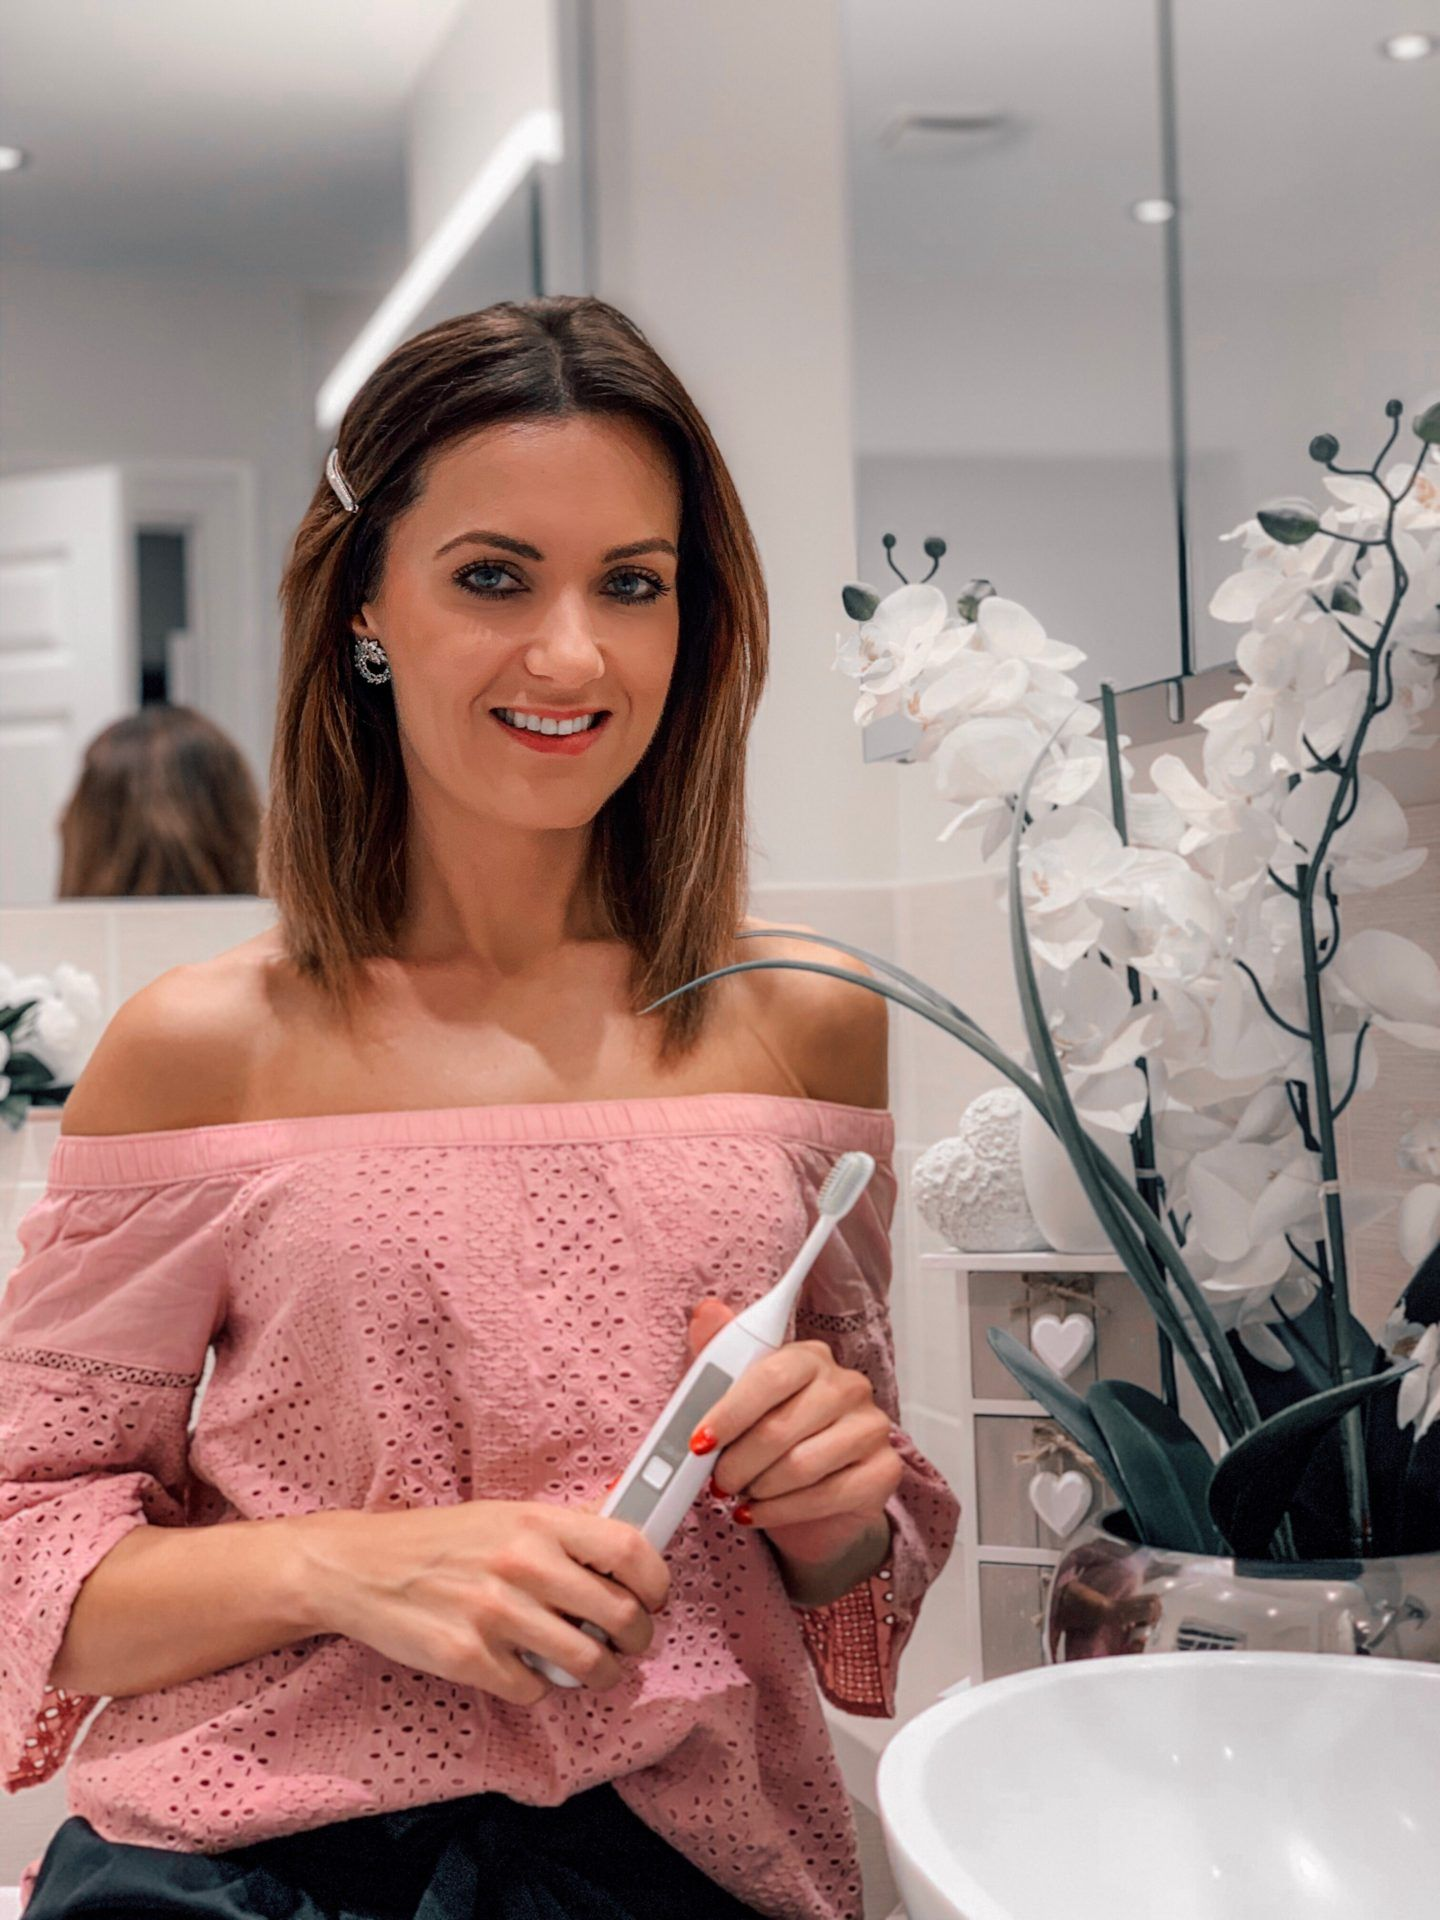 SILK'N TOOTHWAVE: ELECTRIC TOOTHBRUSH WITH DENTALRF™ TECHNOLOGY